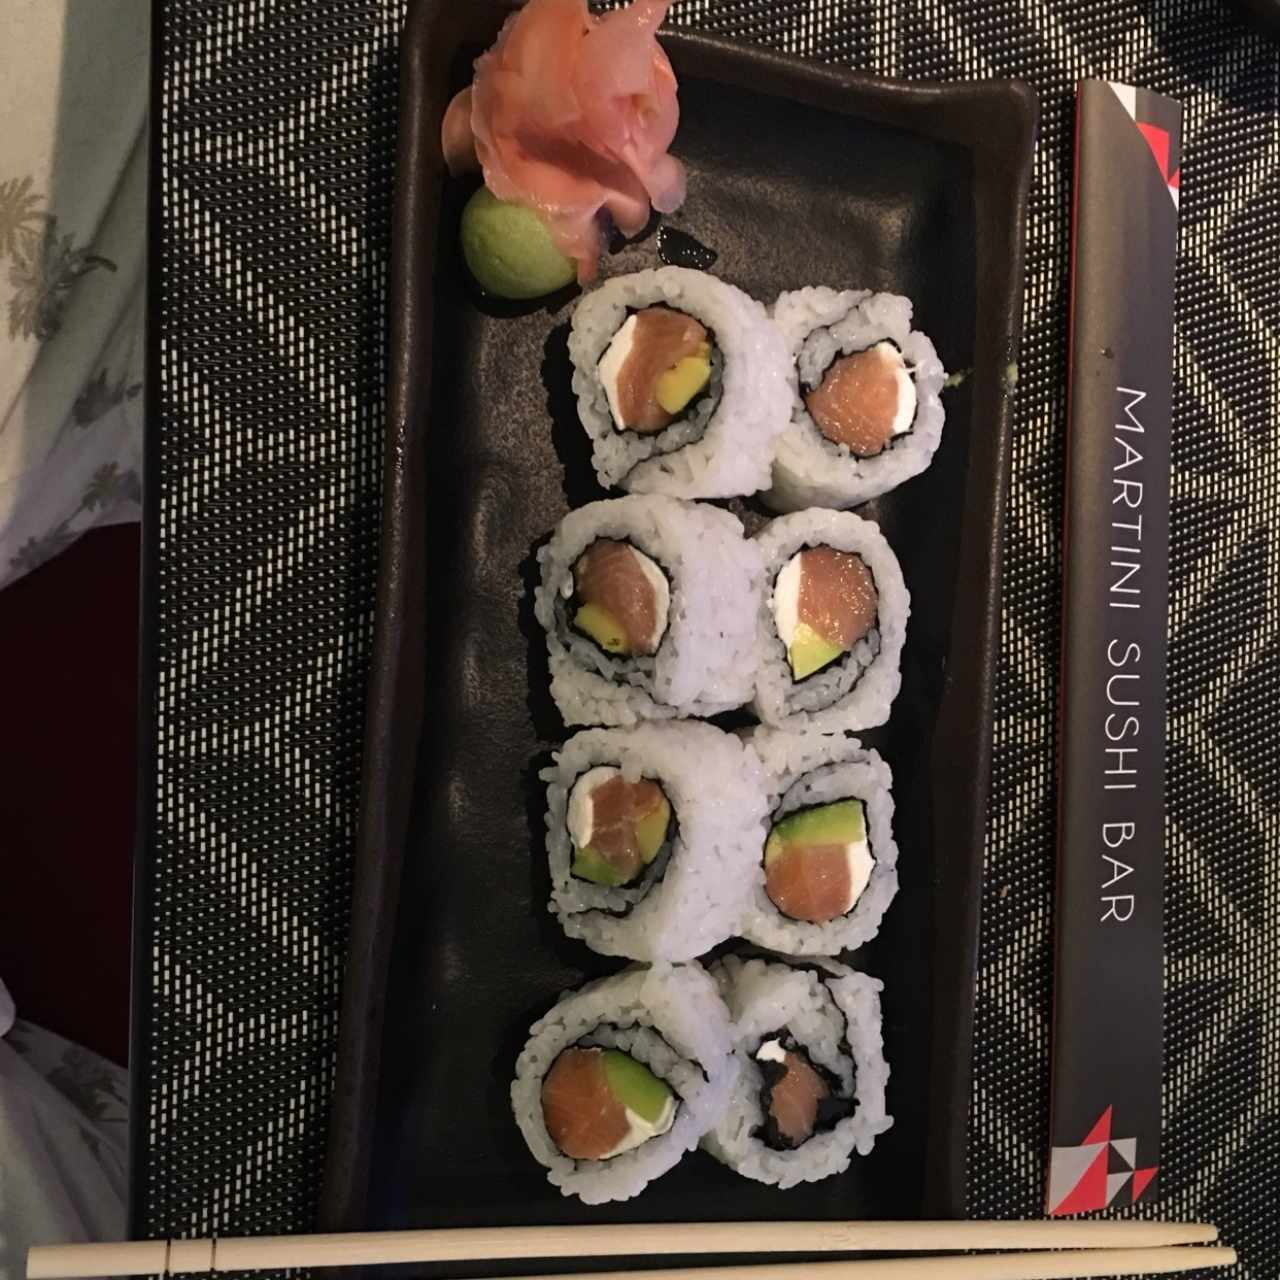 Roll de salmón con aguacate y cream cheese